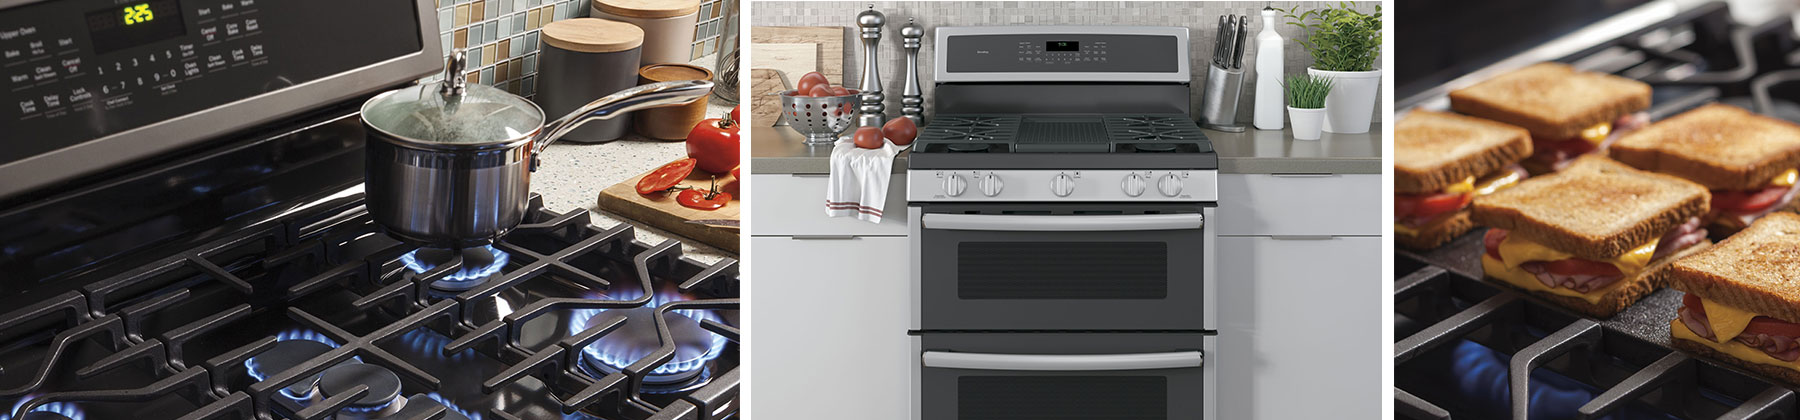 Appliance Delivery Appliance Parts Service Clinton Appliance Furniture Appliance Furniture Mattress Store